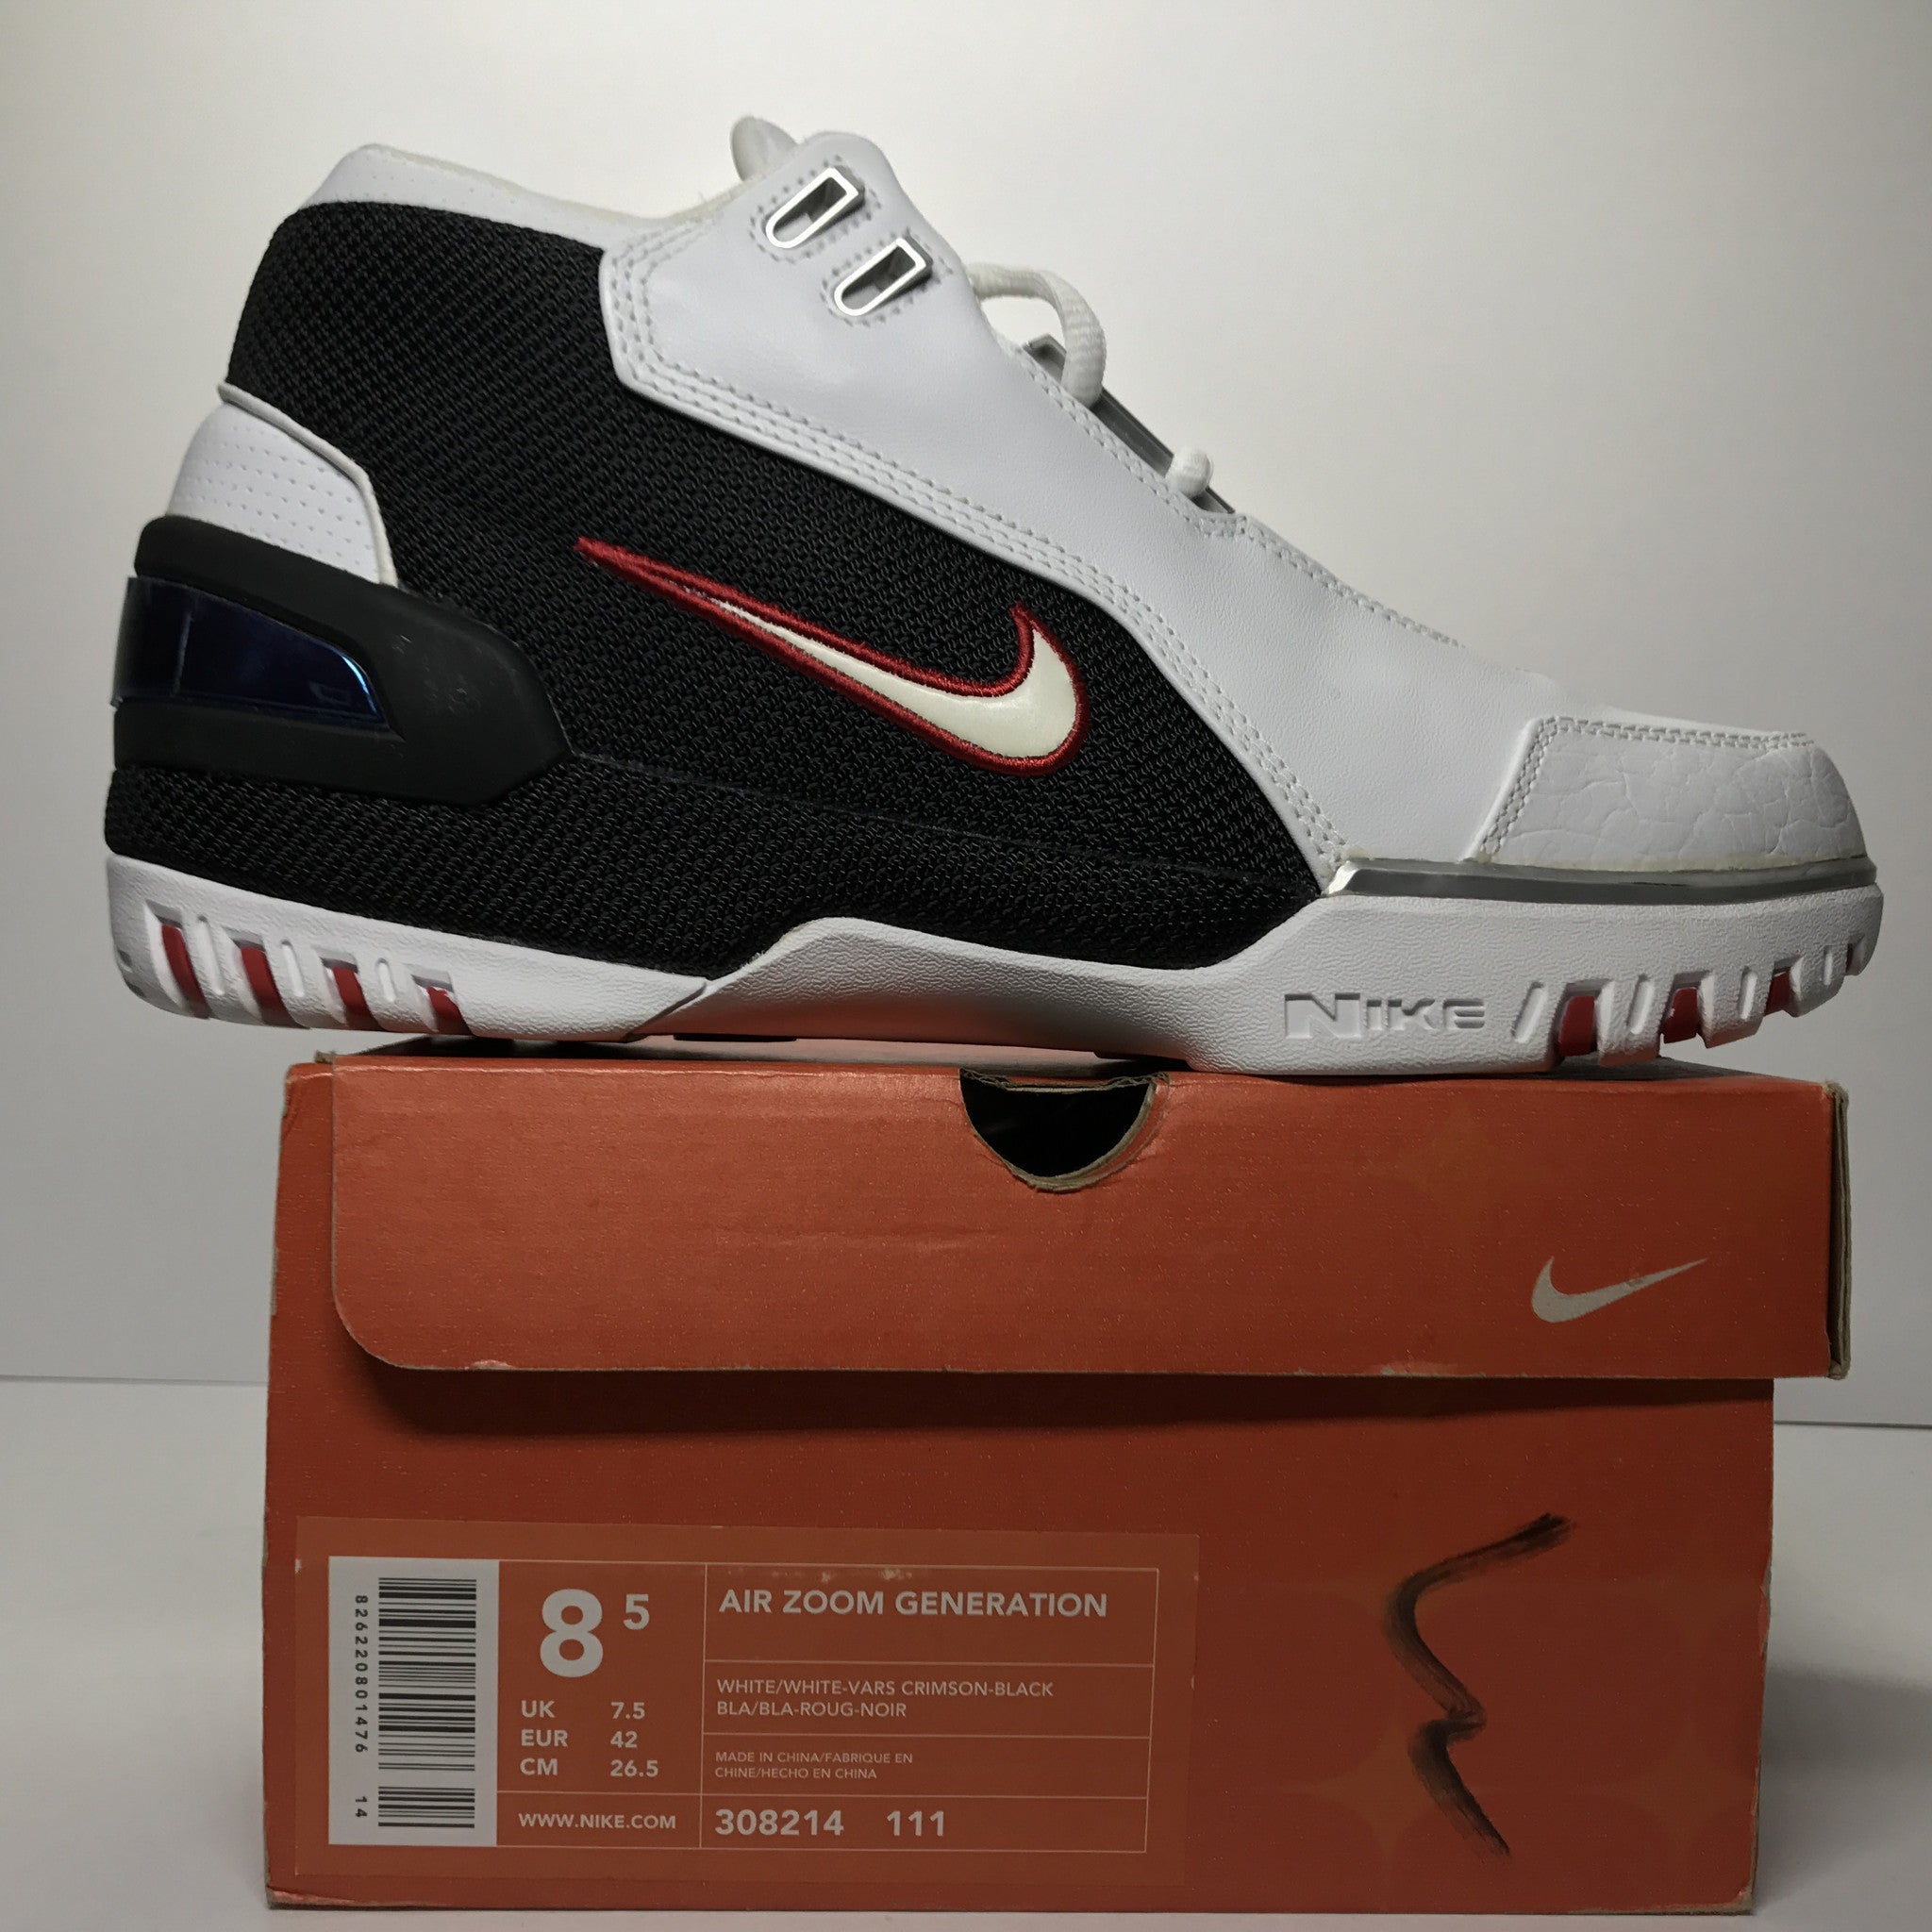 DS Nike Air Zoom Generation Lebron 1